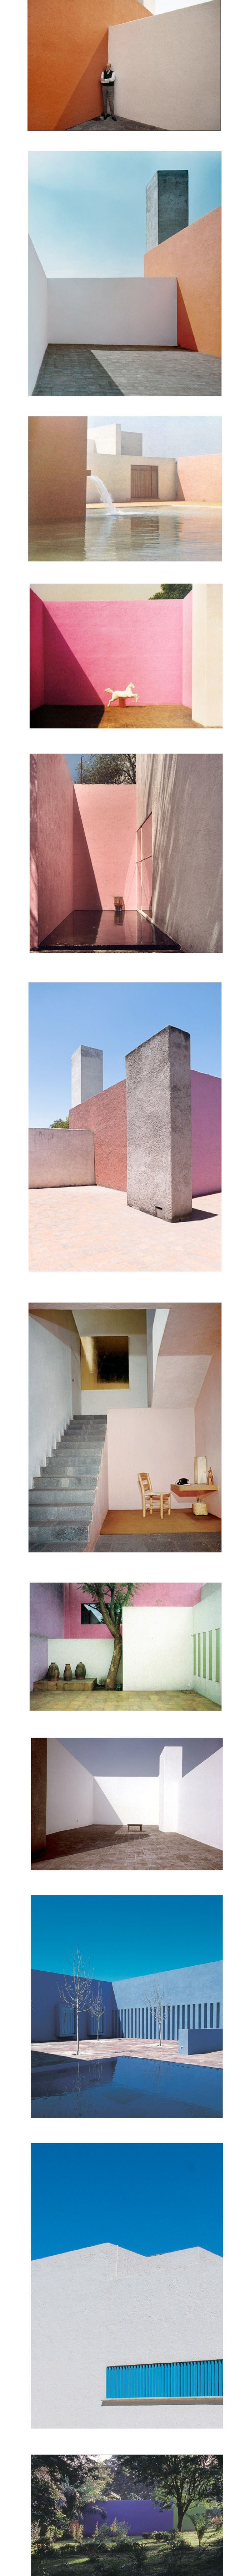 Luis Barragan, architecte mexicain (1902-1988).